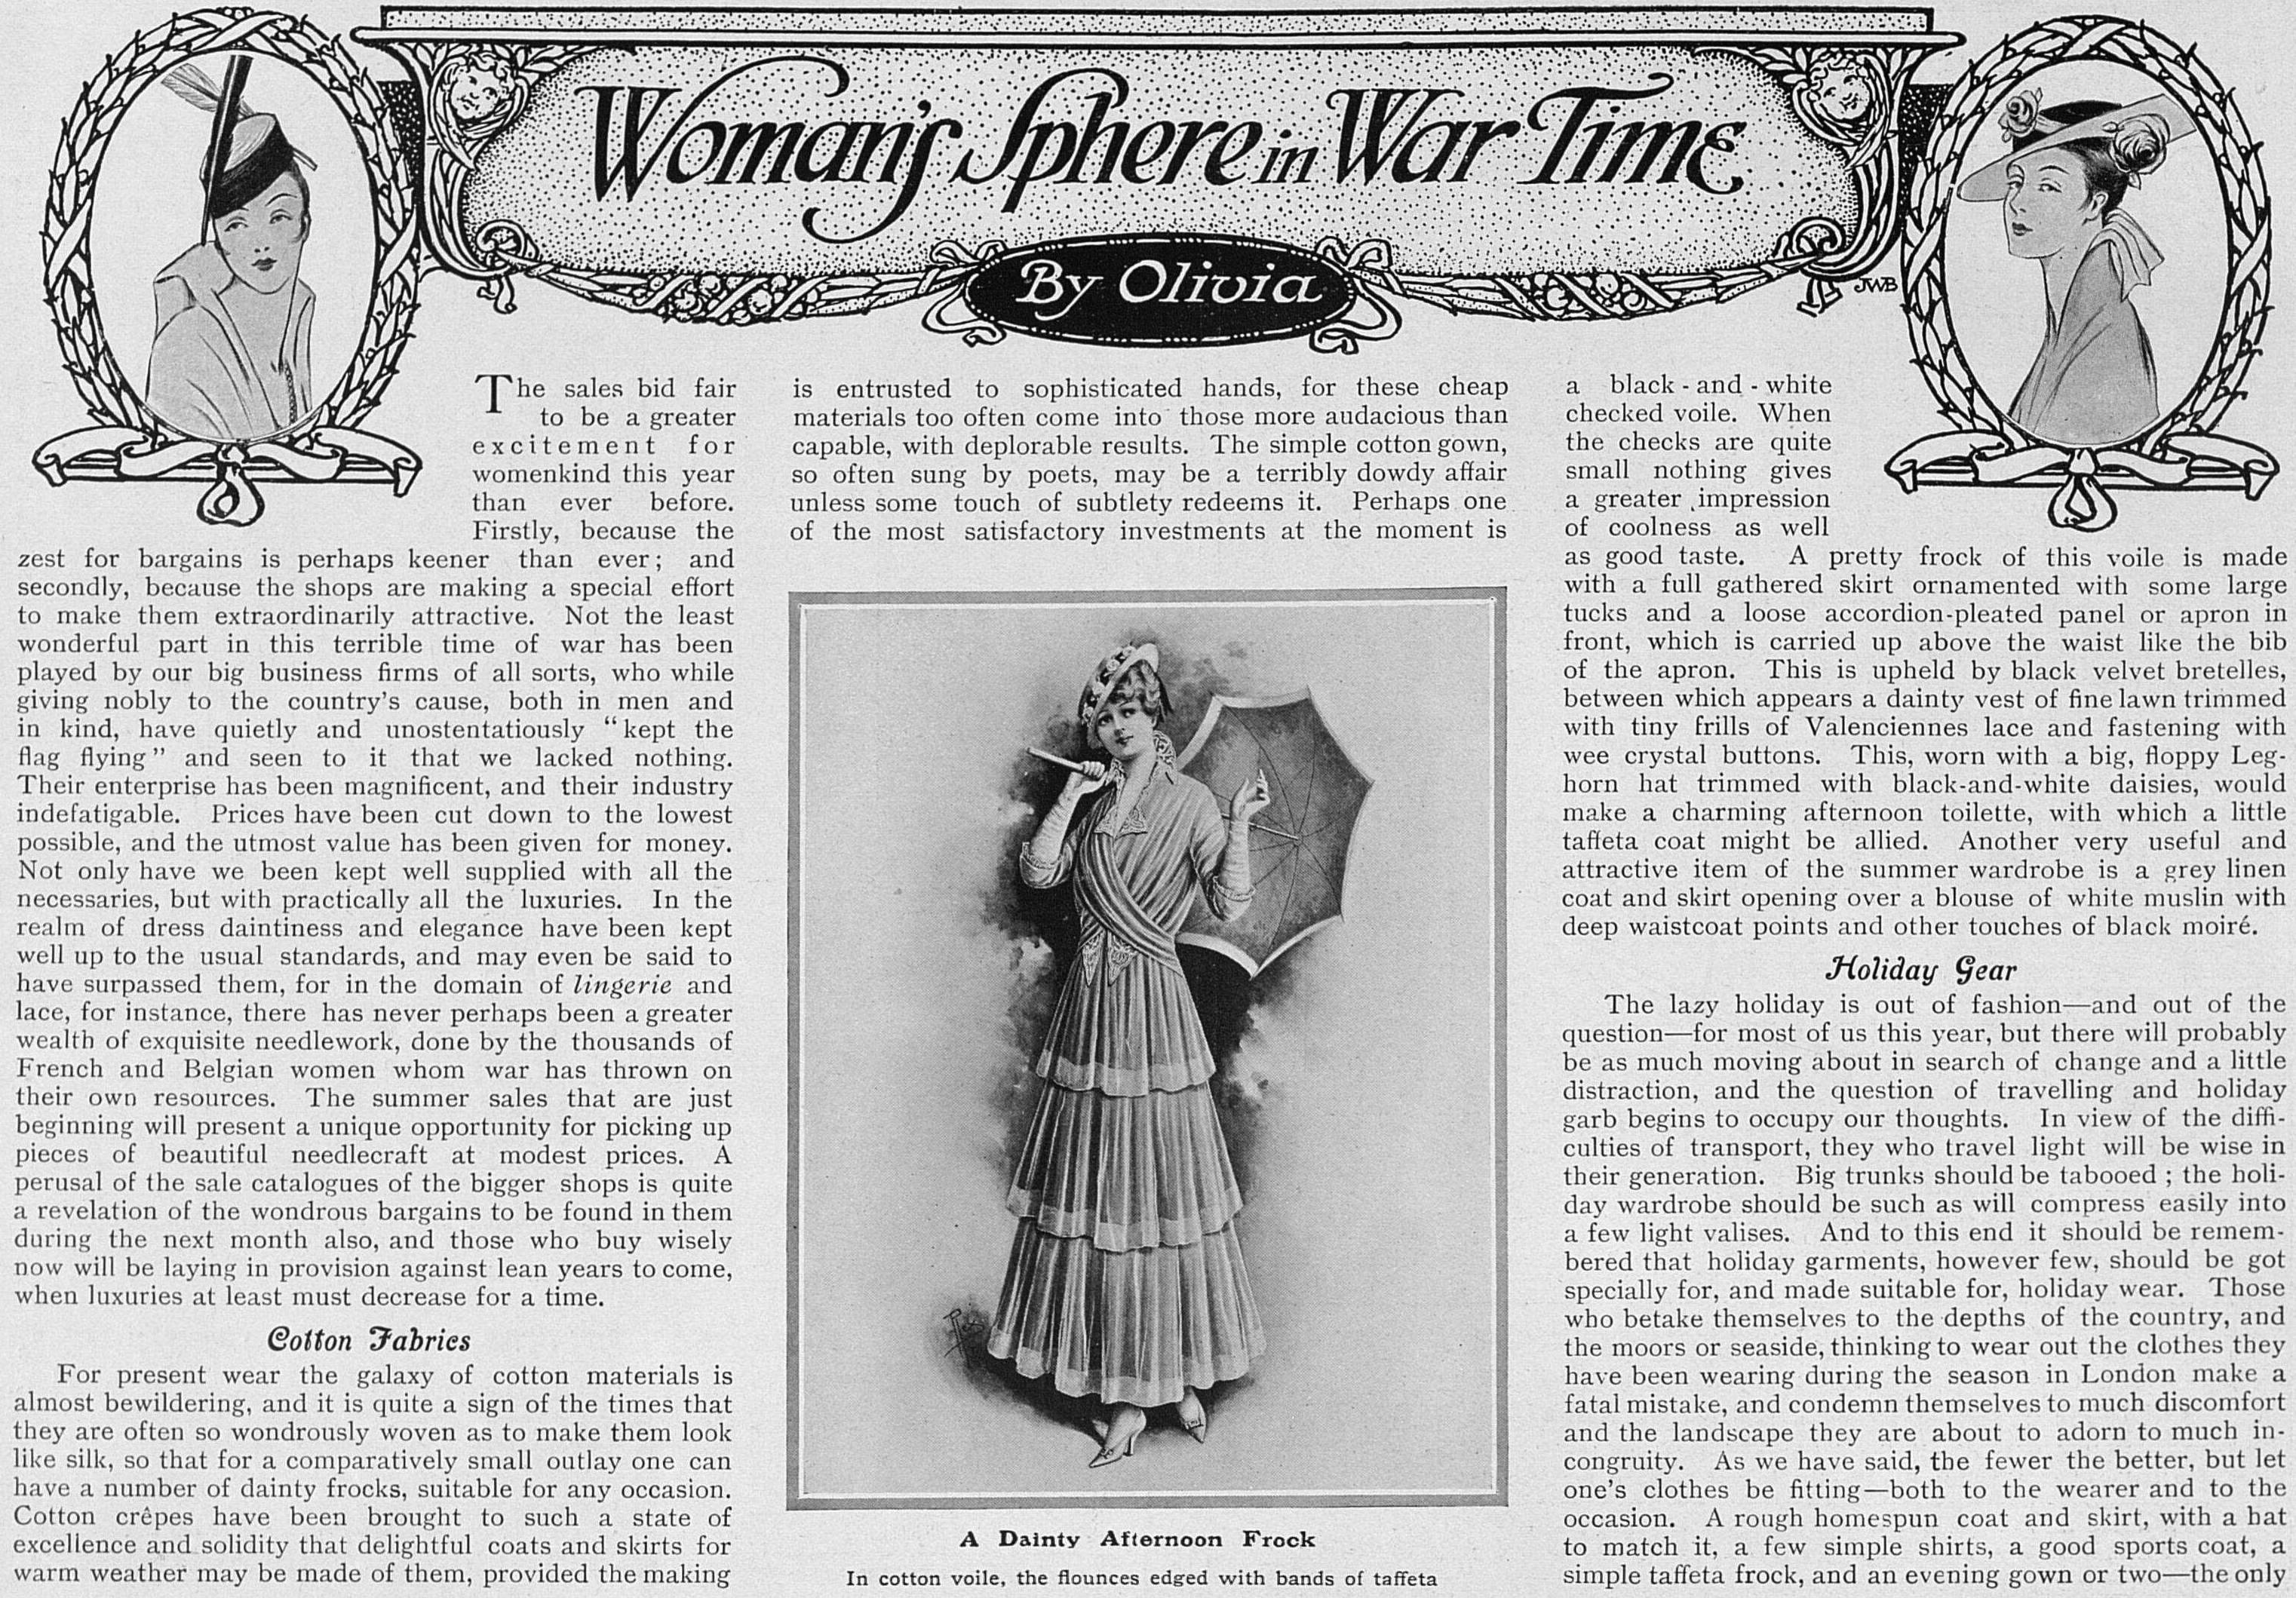 WomansSphereInWarTime_26Jun1915